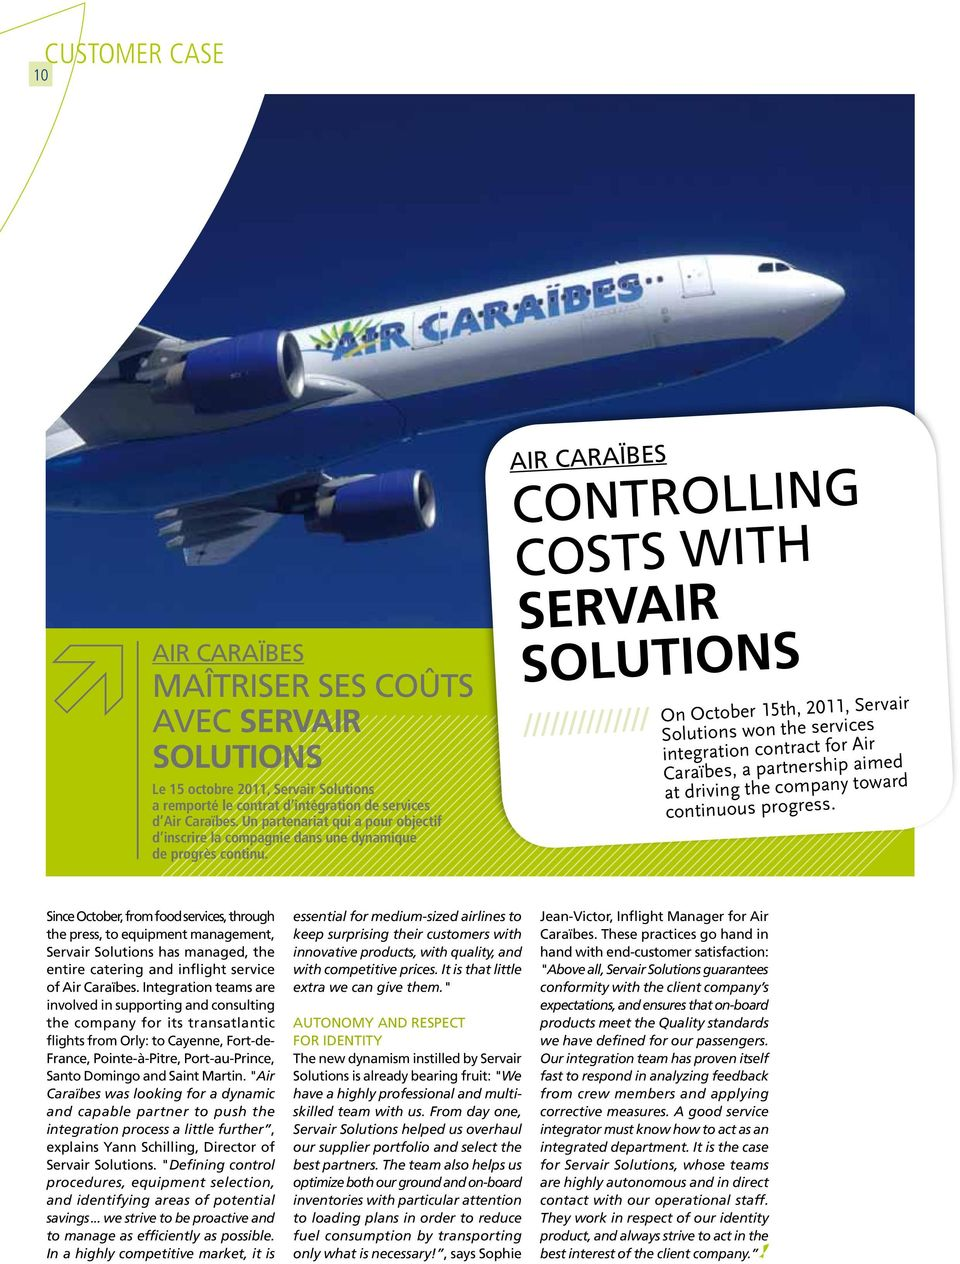 Air Caraïbes Controlling costs with Servair Solutions ////////////// On October 15th, 2011, Servair Solutions won the services integration contract for Air Caraïbes, a partnership aimed at driving